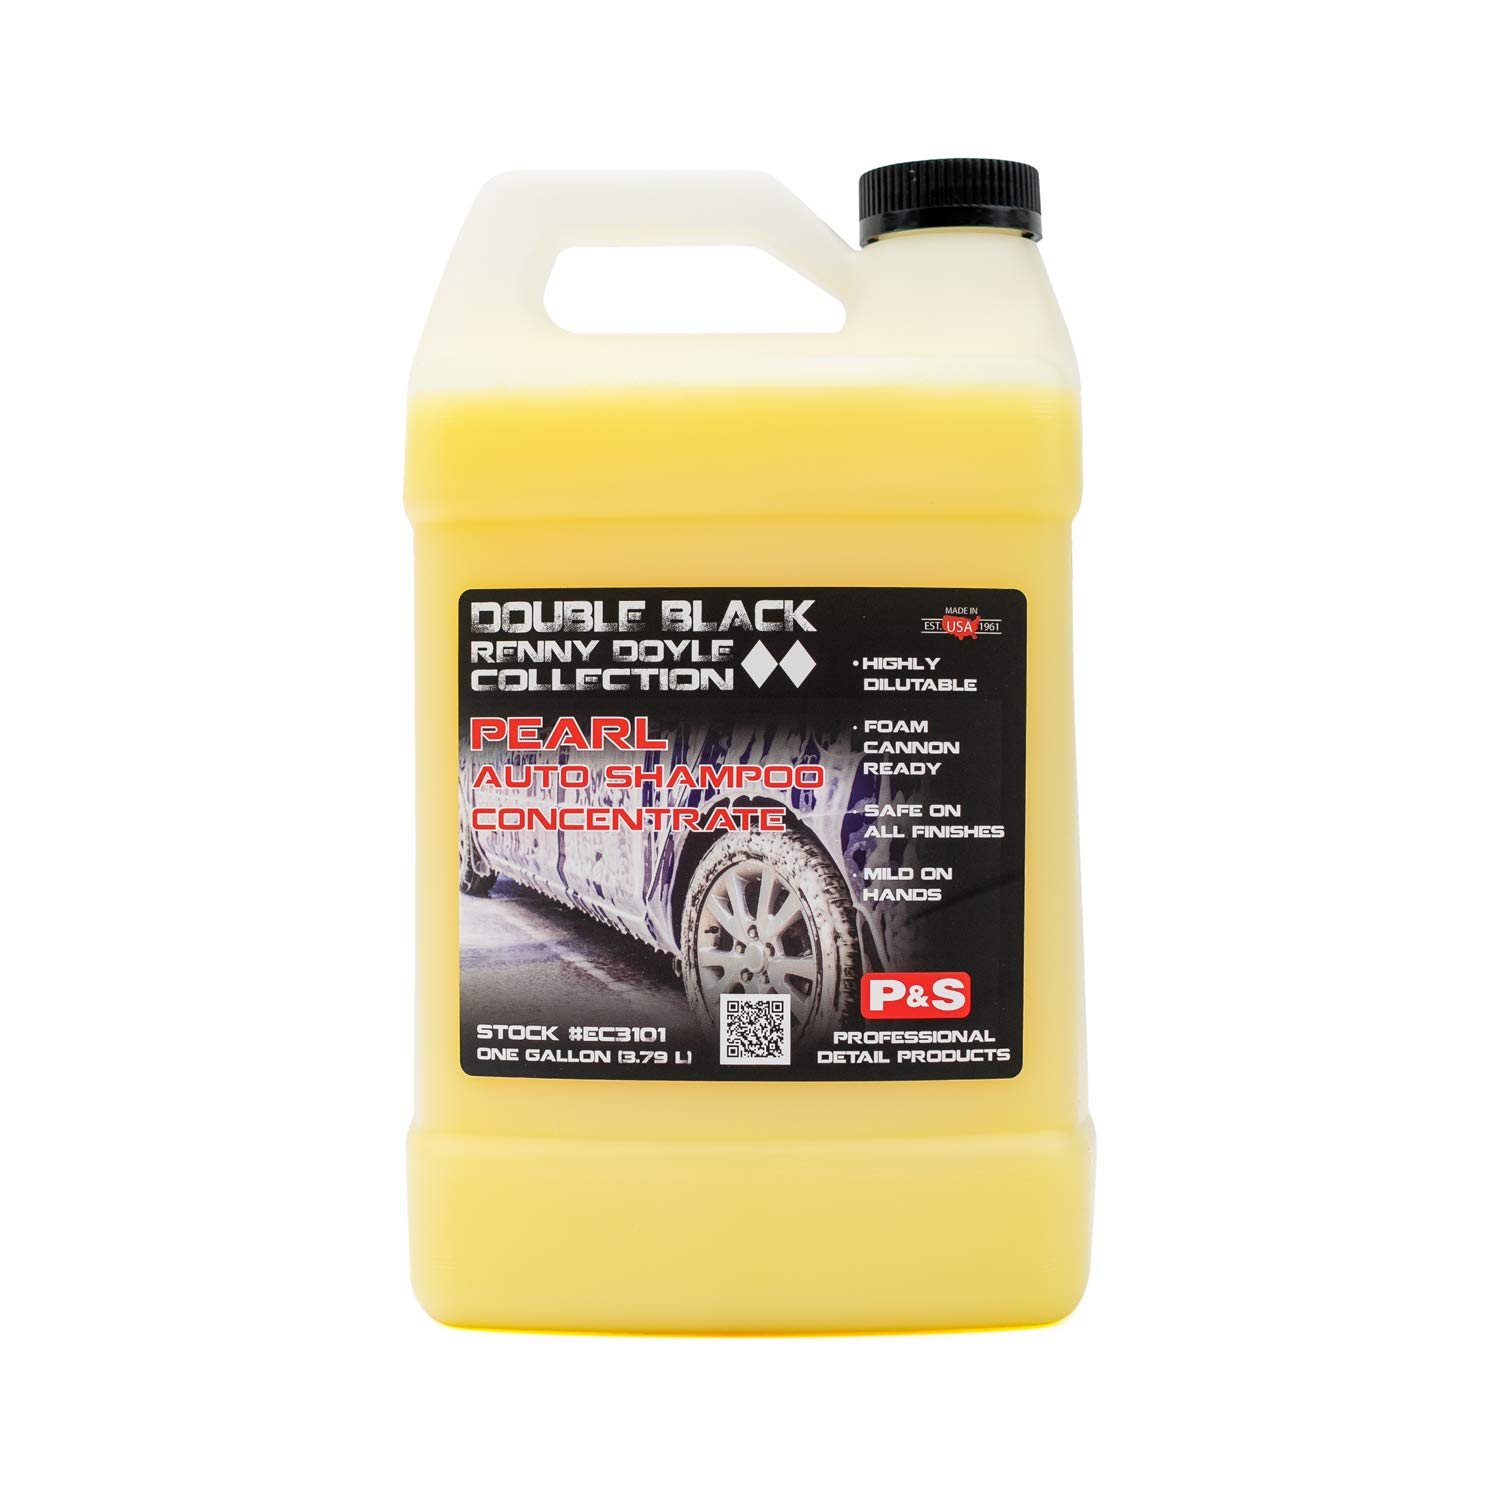 P&S Professional Detail Products - Pearl Auto Shampoo - High Foaming, Easy on Your Auto and Your Hands, Lemon Scent (1 Gallon)